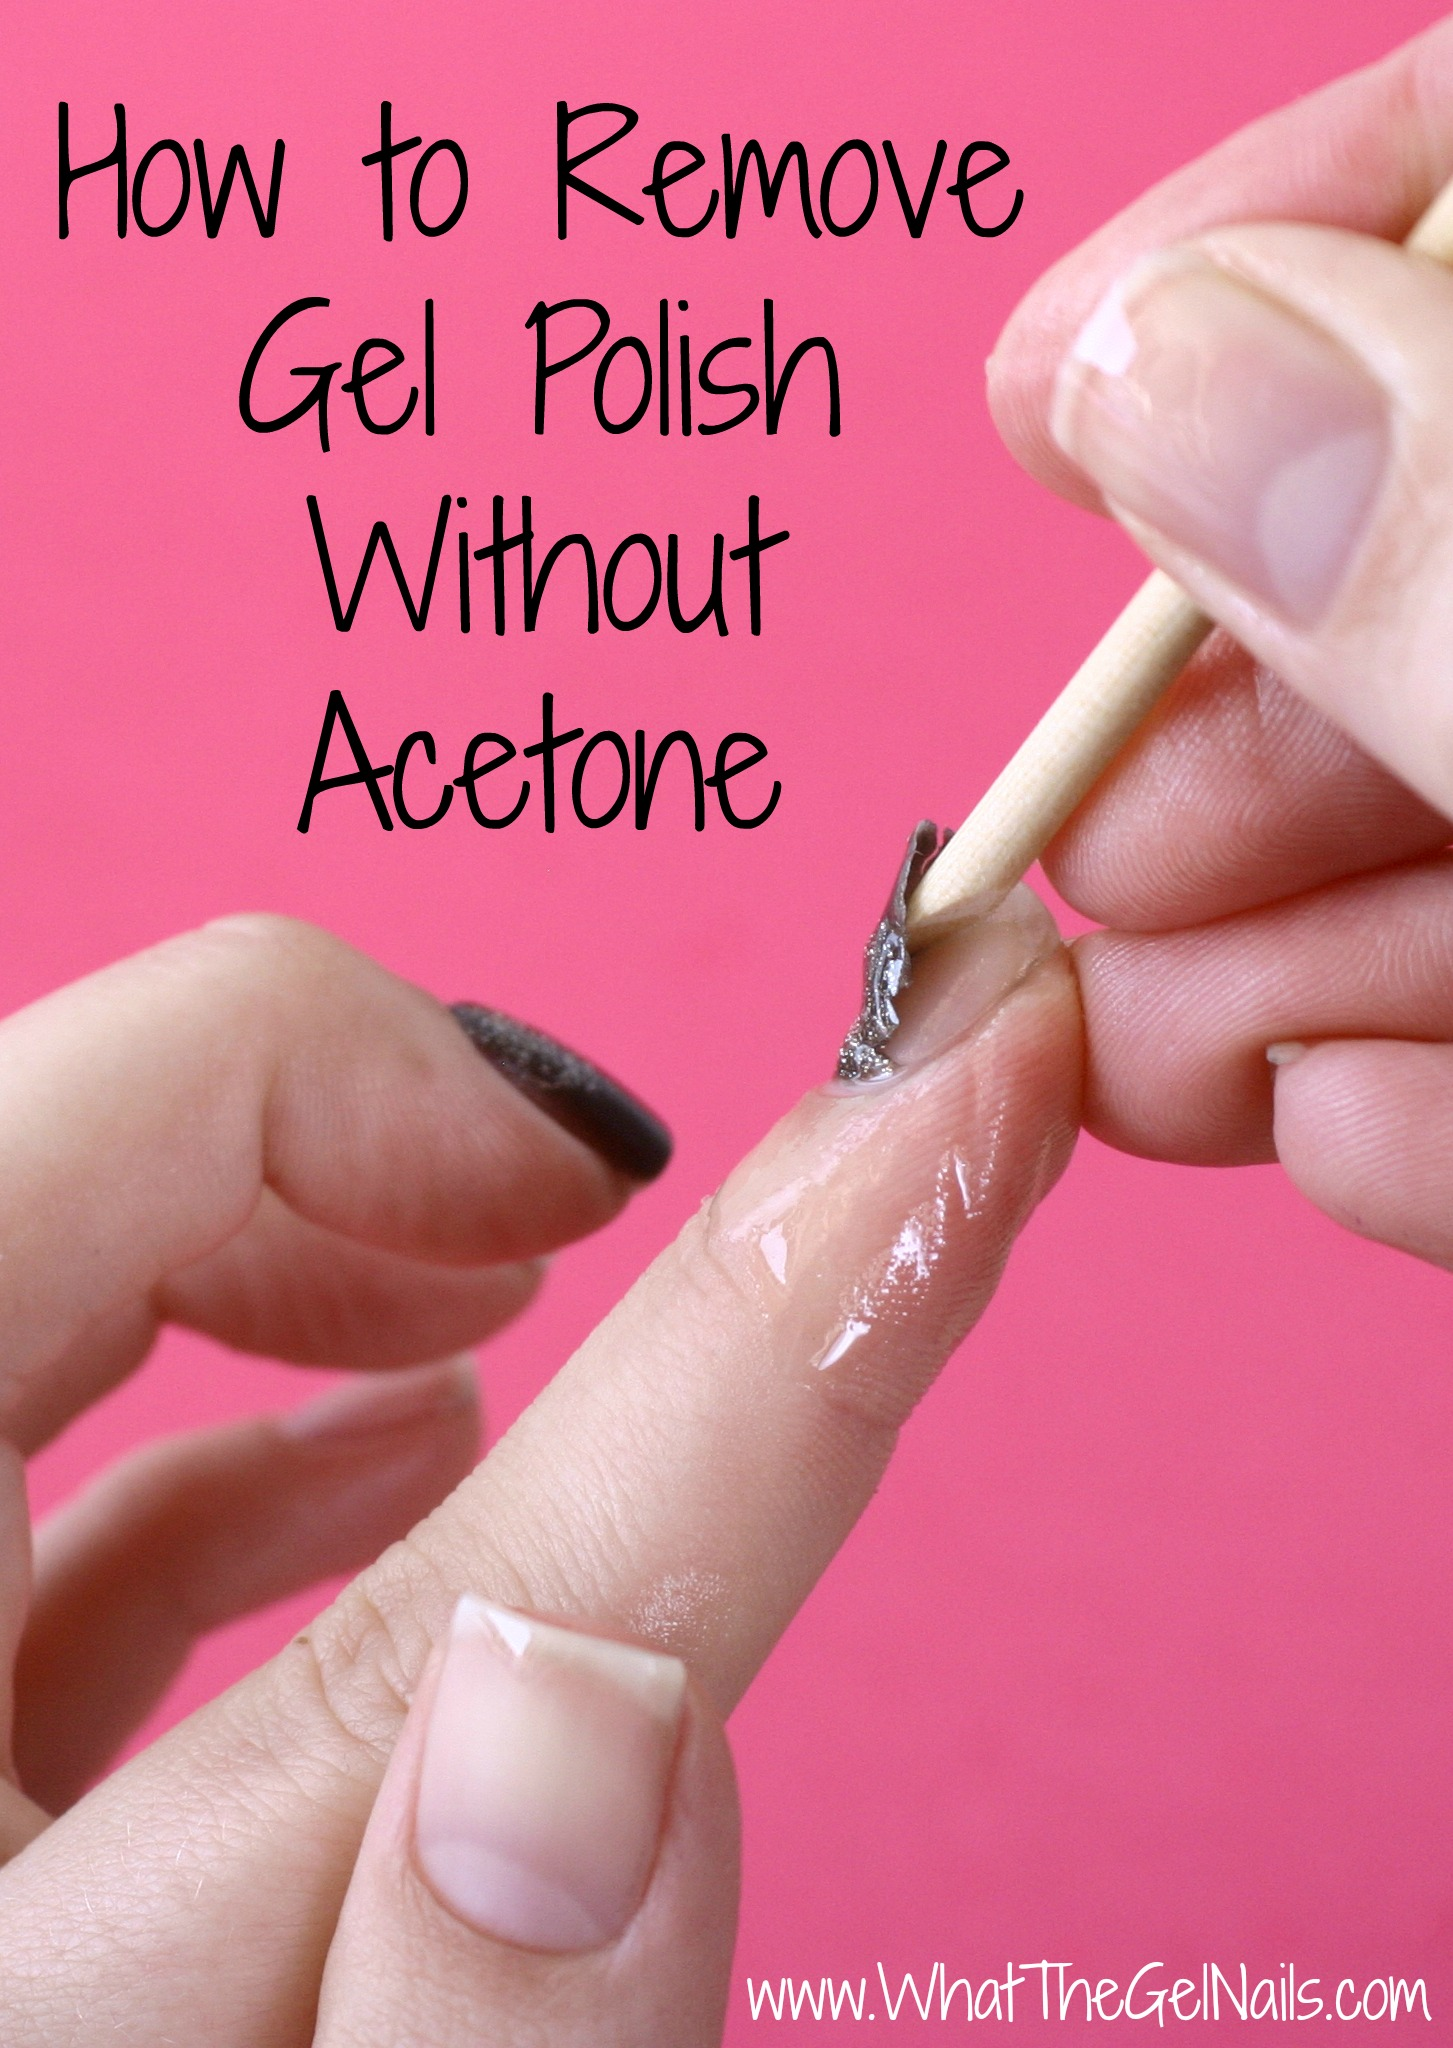 How to remove gel polish without acetone remove gel polish without acetone solutioingenieria Gallery